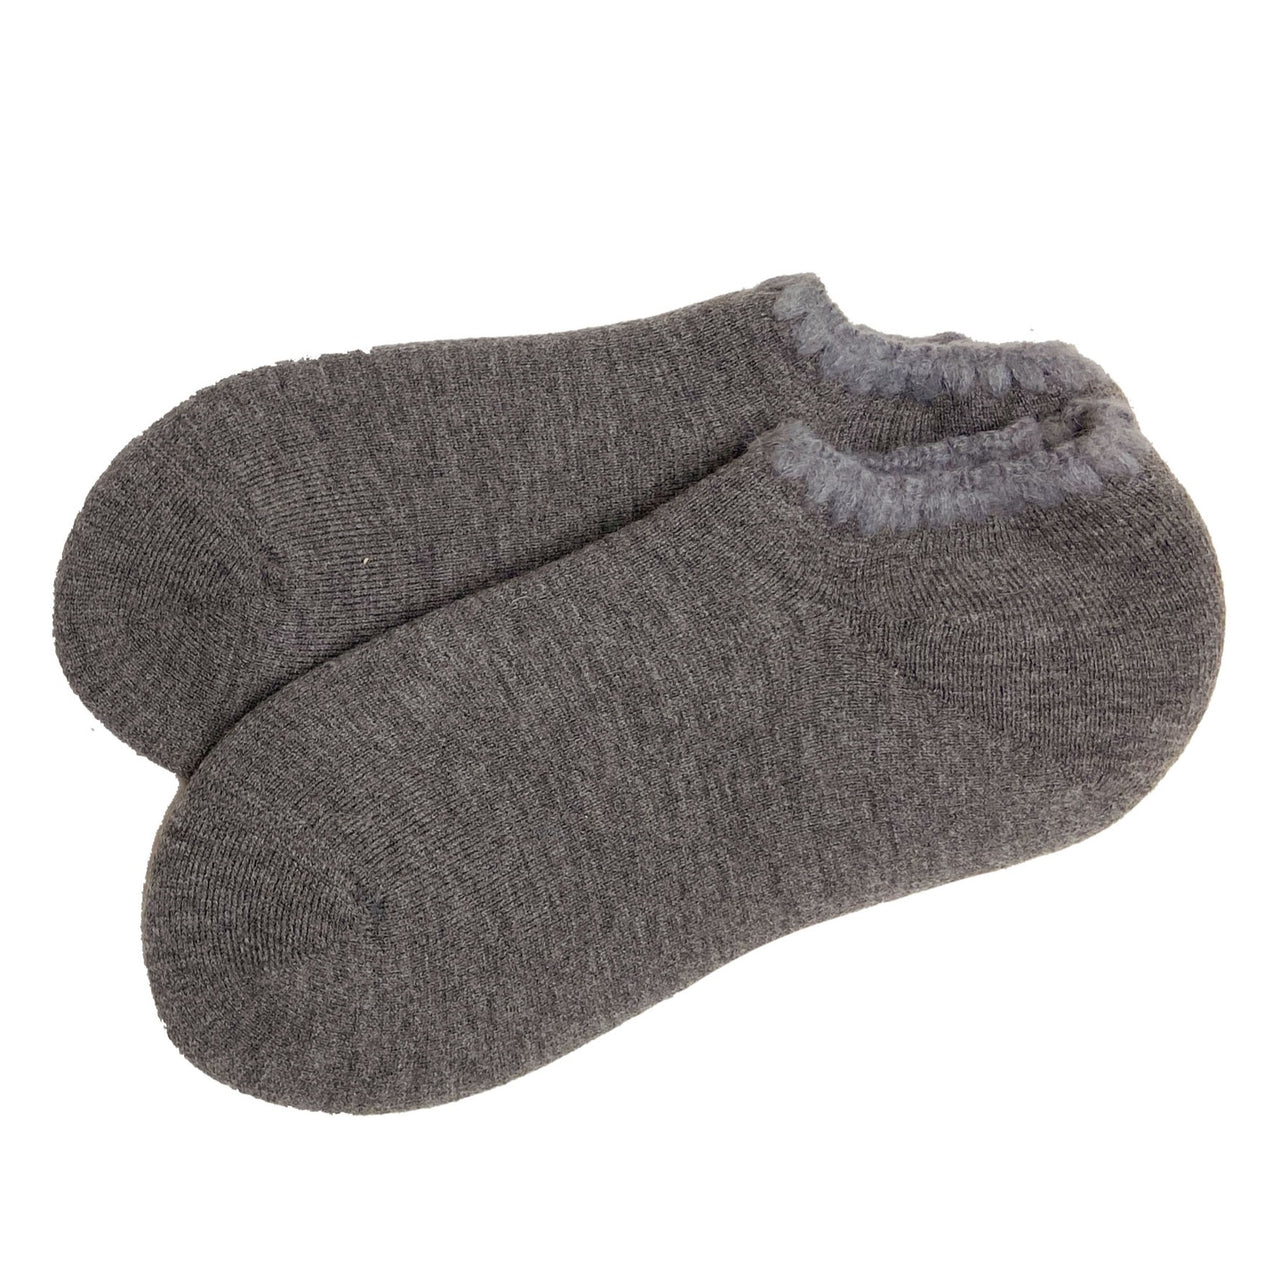 CHERRYSTONE® Slipper Socks with Grips | Size Large | Slate Gray - CHERRYSTONE